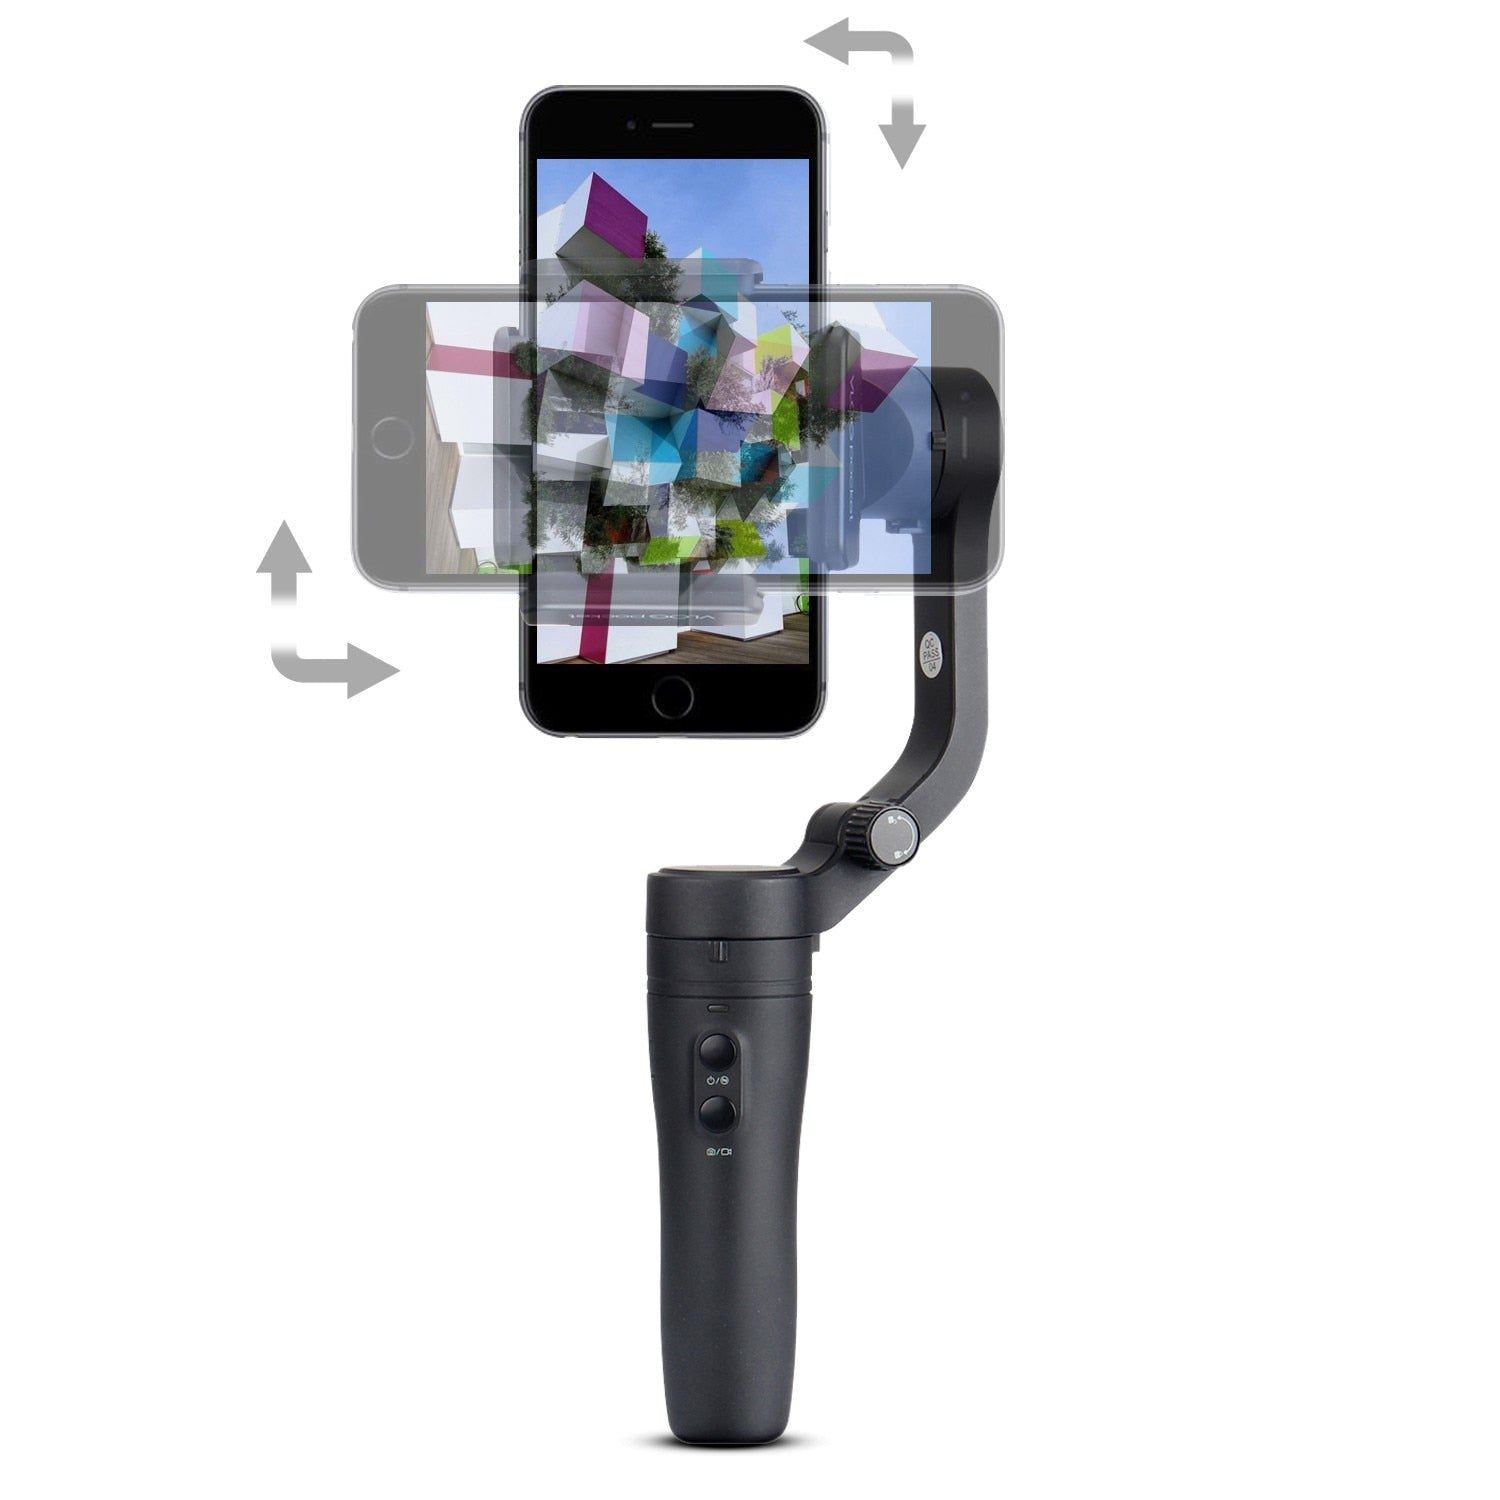 Pocket Handheld Phone Gimbal Smartphone Stabilizer